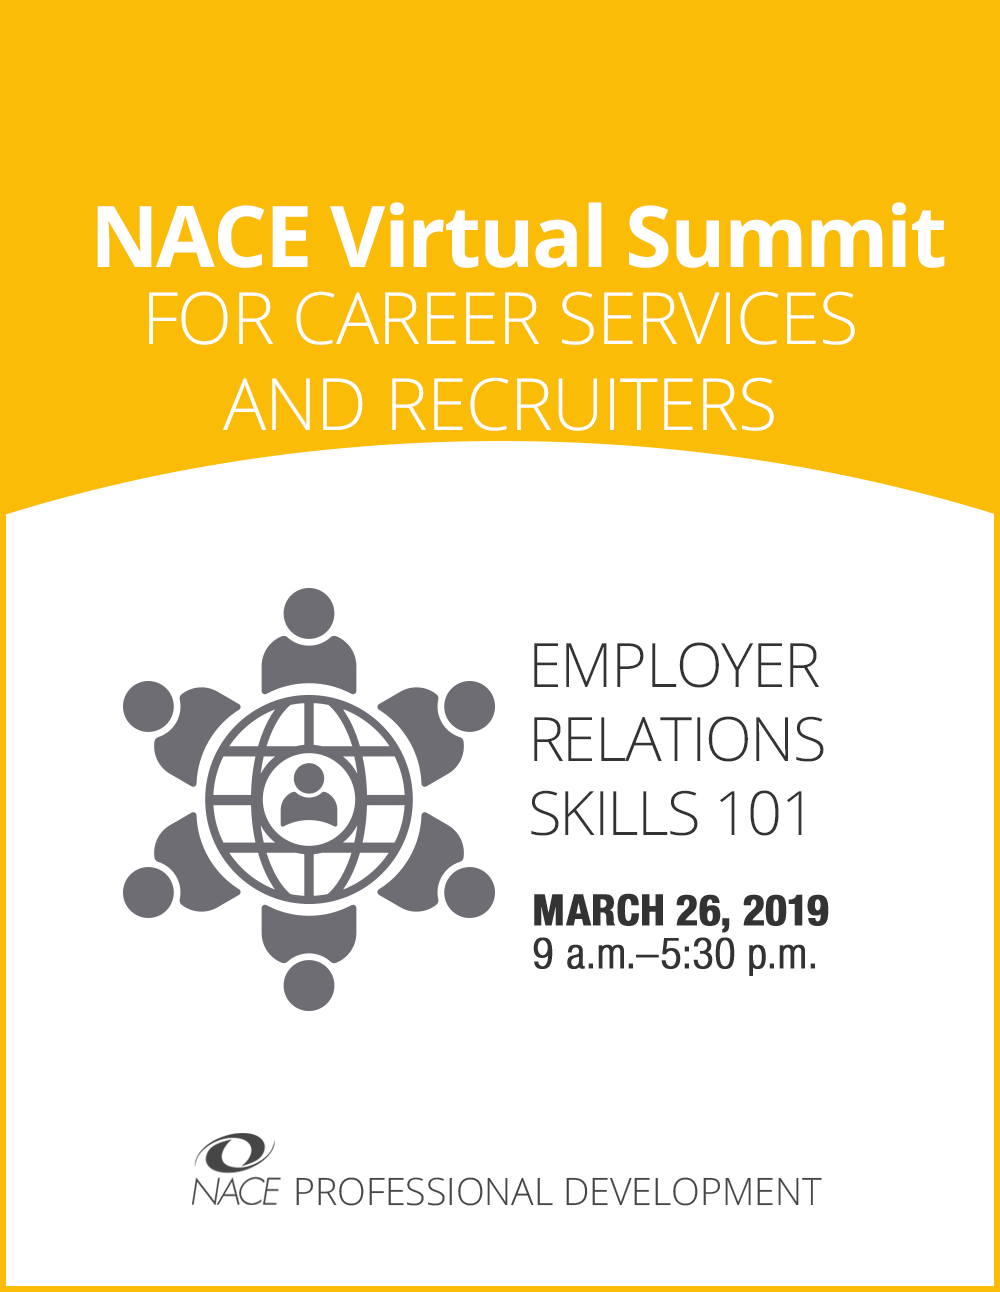 NACE Virtual Summit: Employer Relations Skills 101